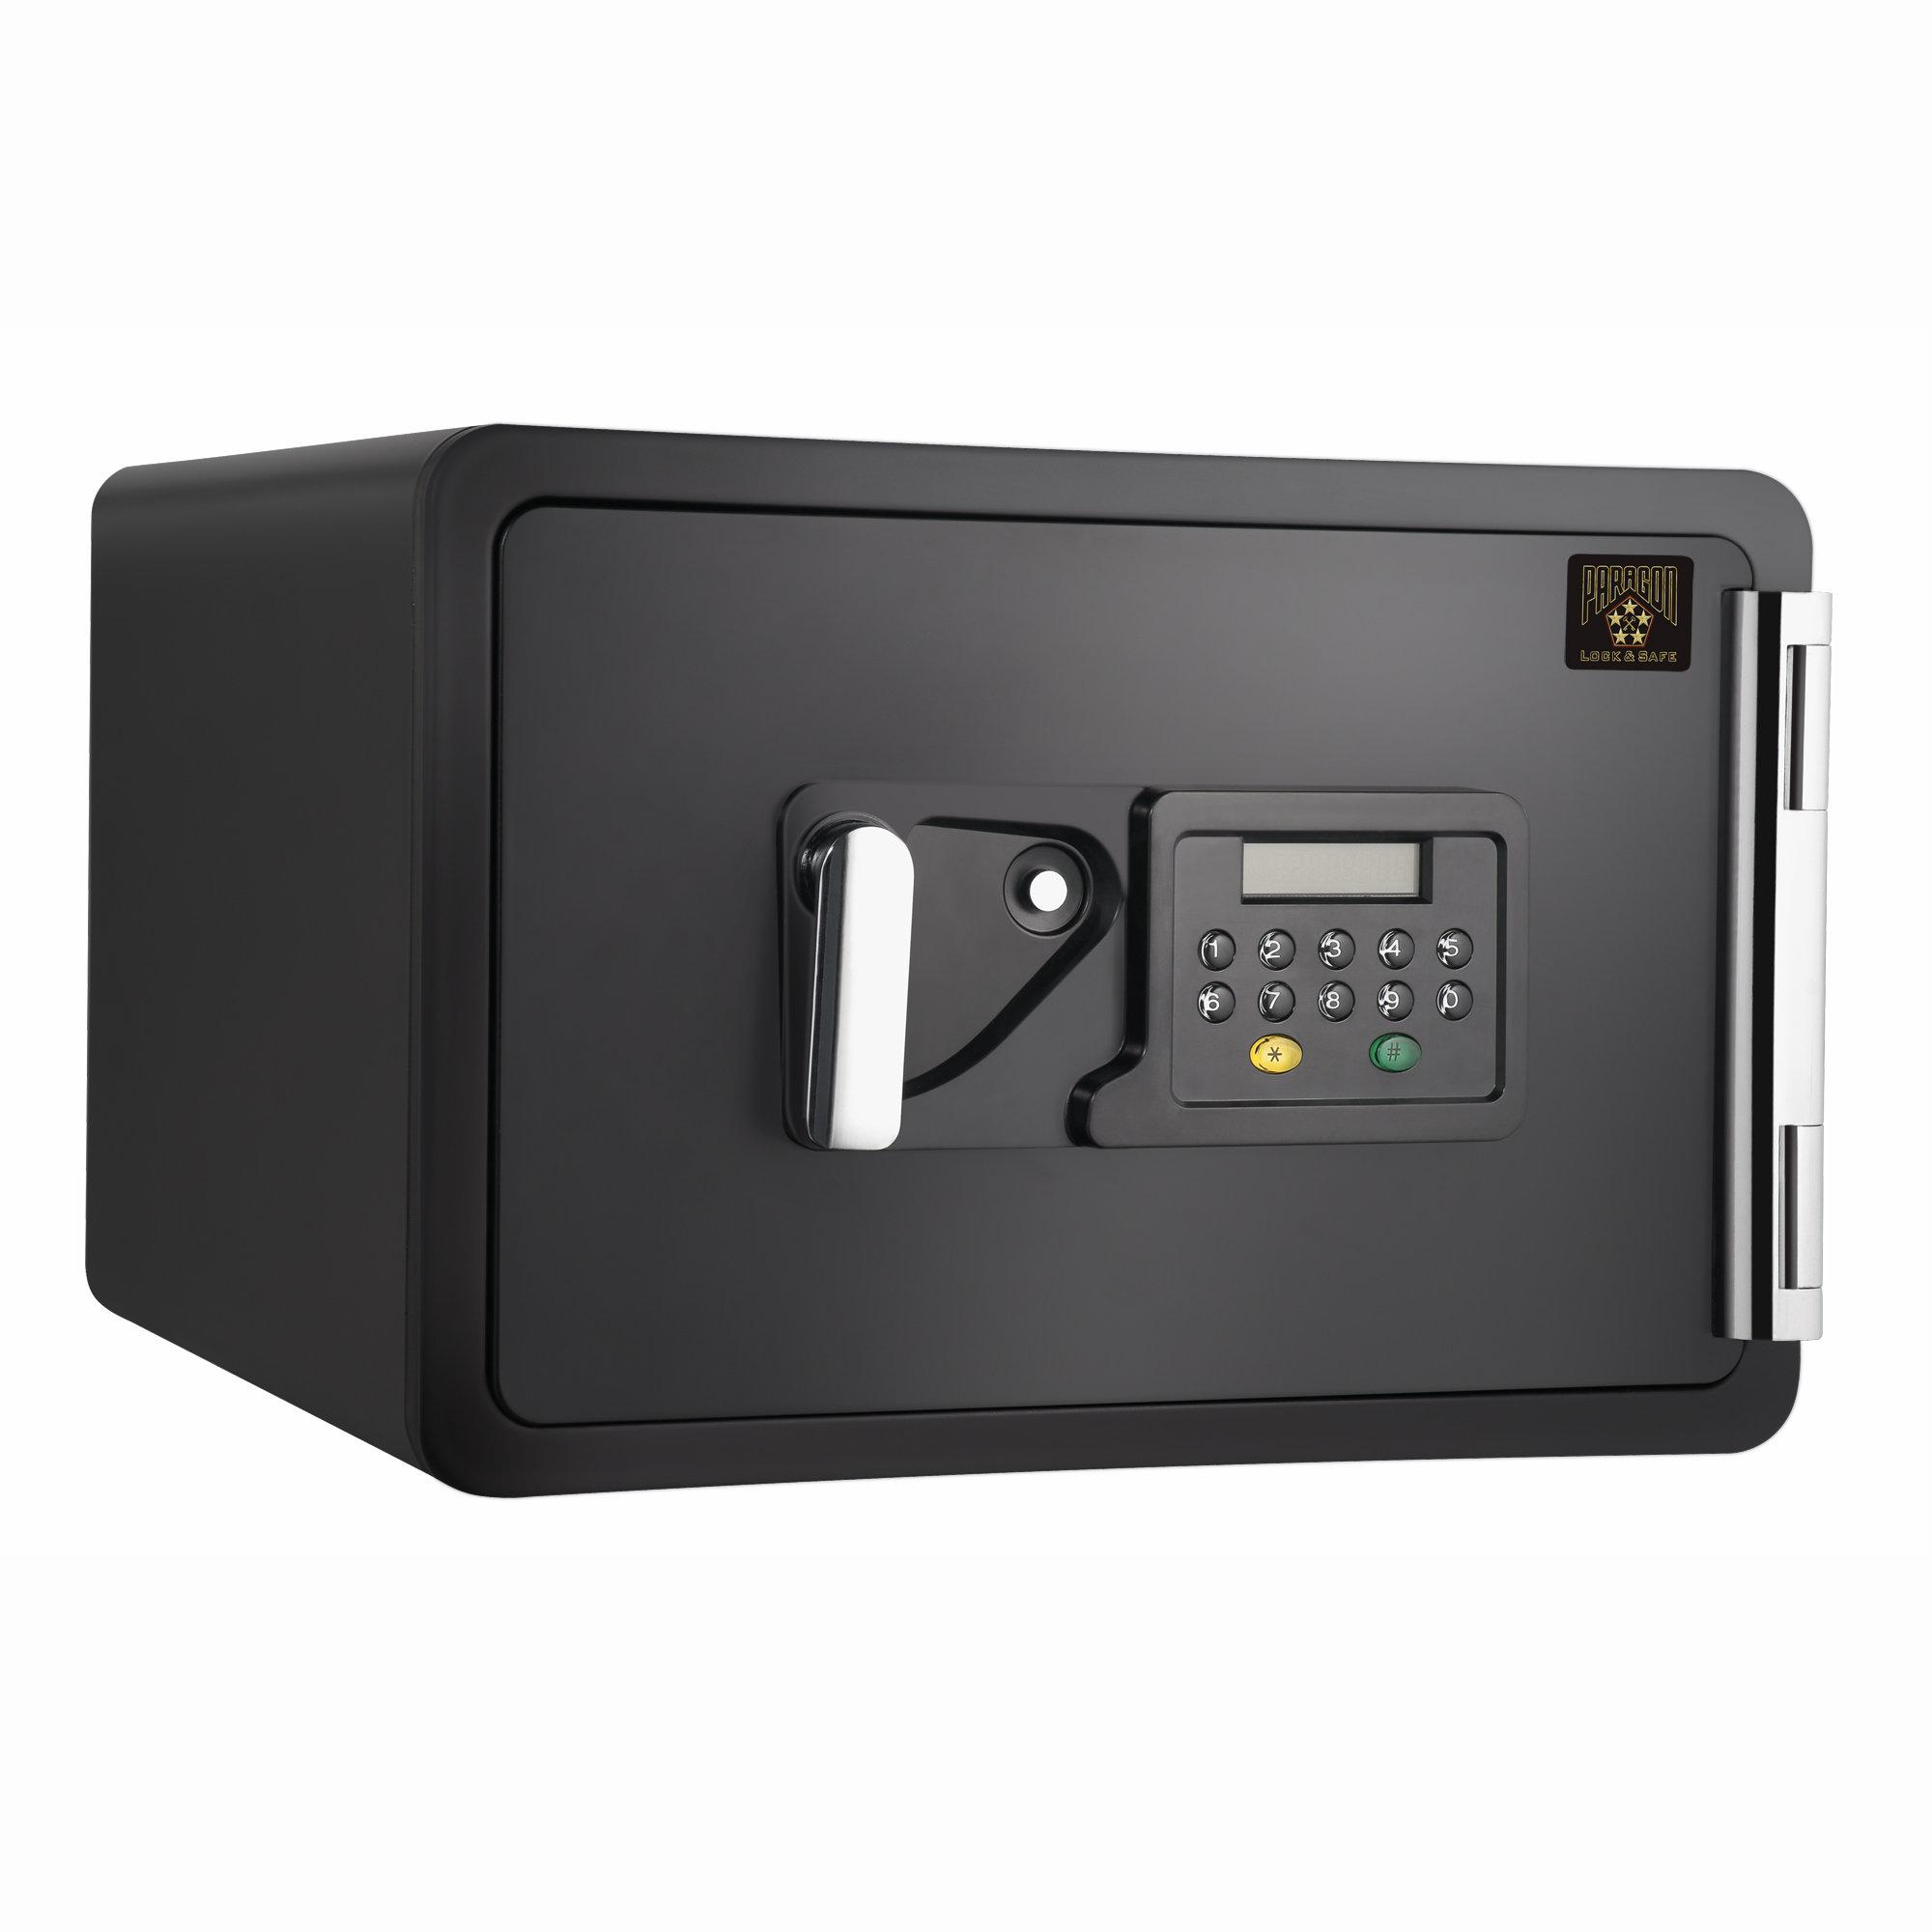 Paragon Lock & Safe FirePrince Electronic Digital Home Fire Safe Heavy Duty Paragon Lock & Safe at Sears.com